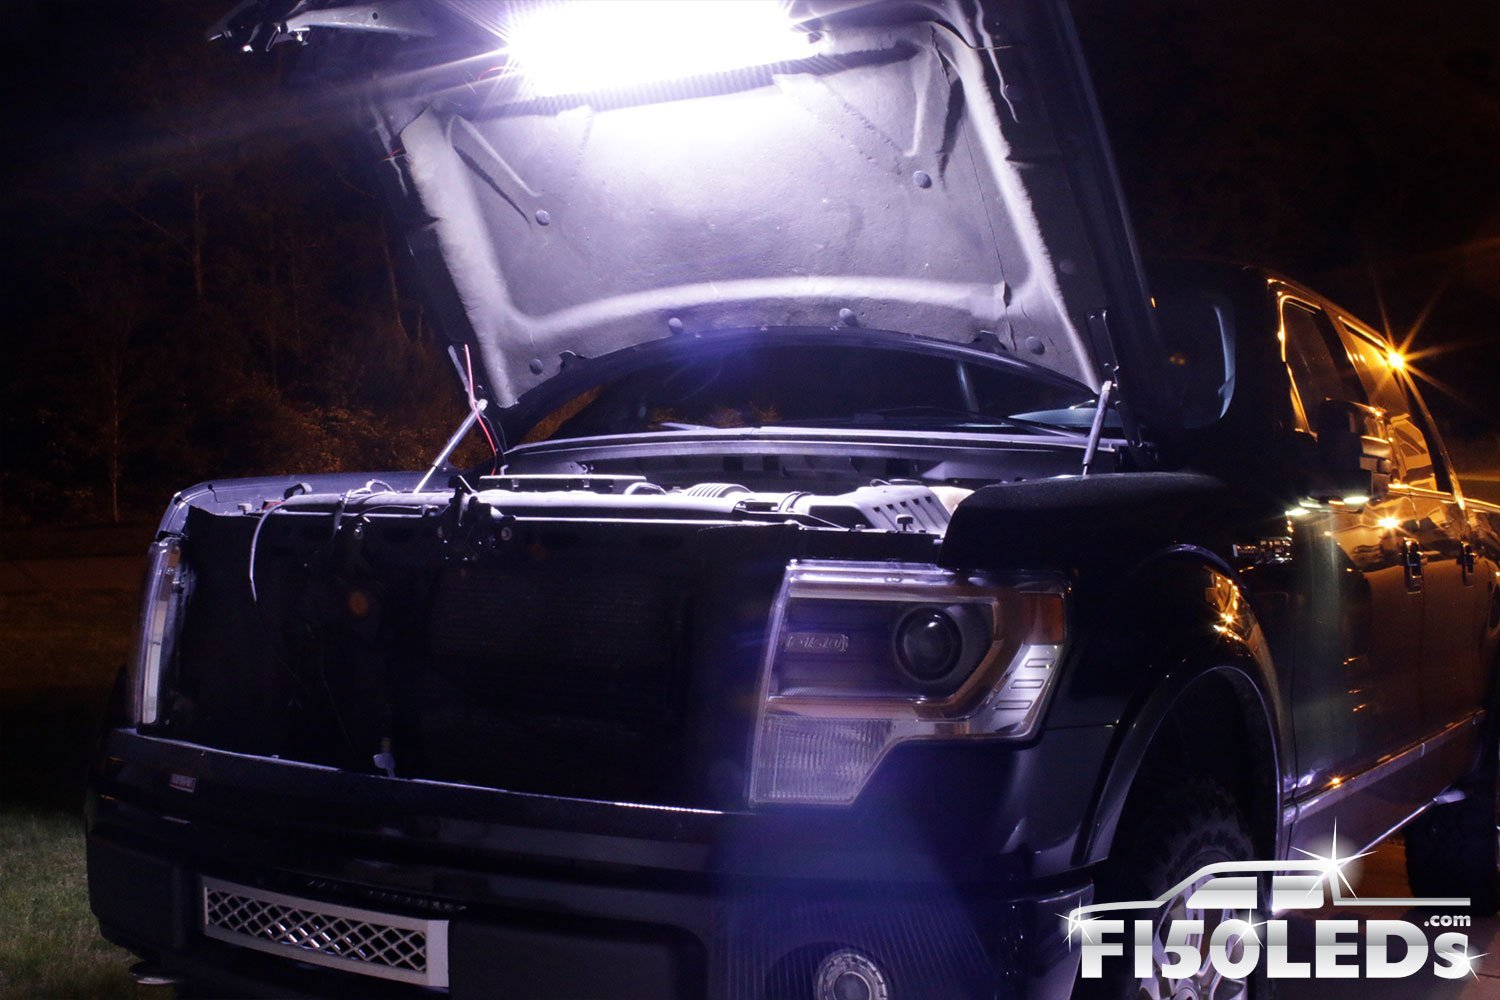 2010-14 Raptor F150 LED Automatic Engine Bay Hood Light Kit-2010-14 F150 RAPTOR LEDS-F150LEDs.com